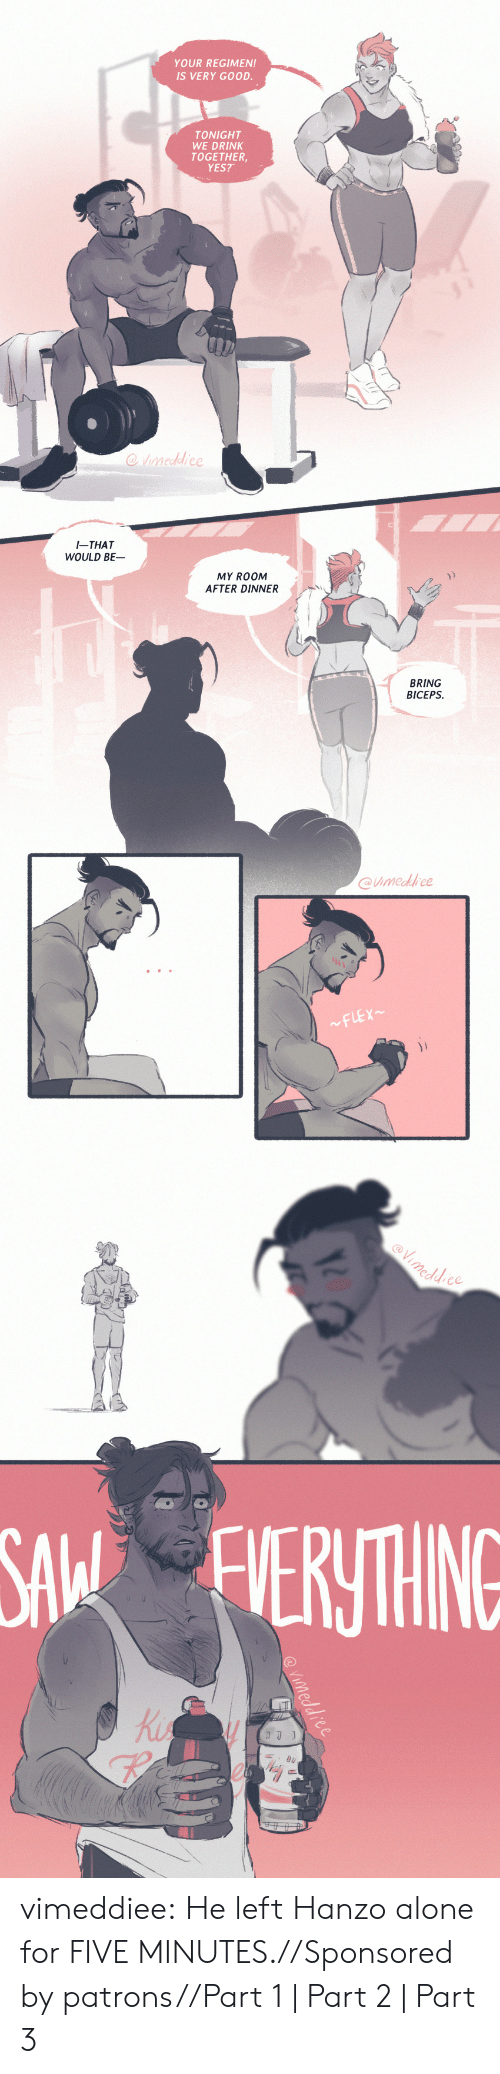 Hanzo: YOUR REGIMEN!  IS VERY GOOD.  TONIGHT  WE DRINK  TOGETHER  YES?   I-THAT  WOULD BE  MY ROOM  AFTER DINNER  兀  BRING  BICEPS  @imedfrce   eddce  SA ERTHING  Ki  re vimeddiee:  He left Hanzo alone for FIVE MINUTES.//Sponsored by patrons//Part 1 | Part 2| Part 3